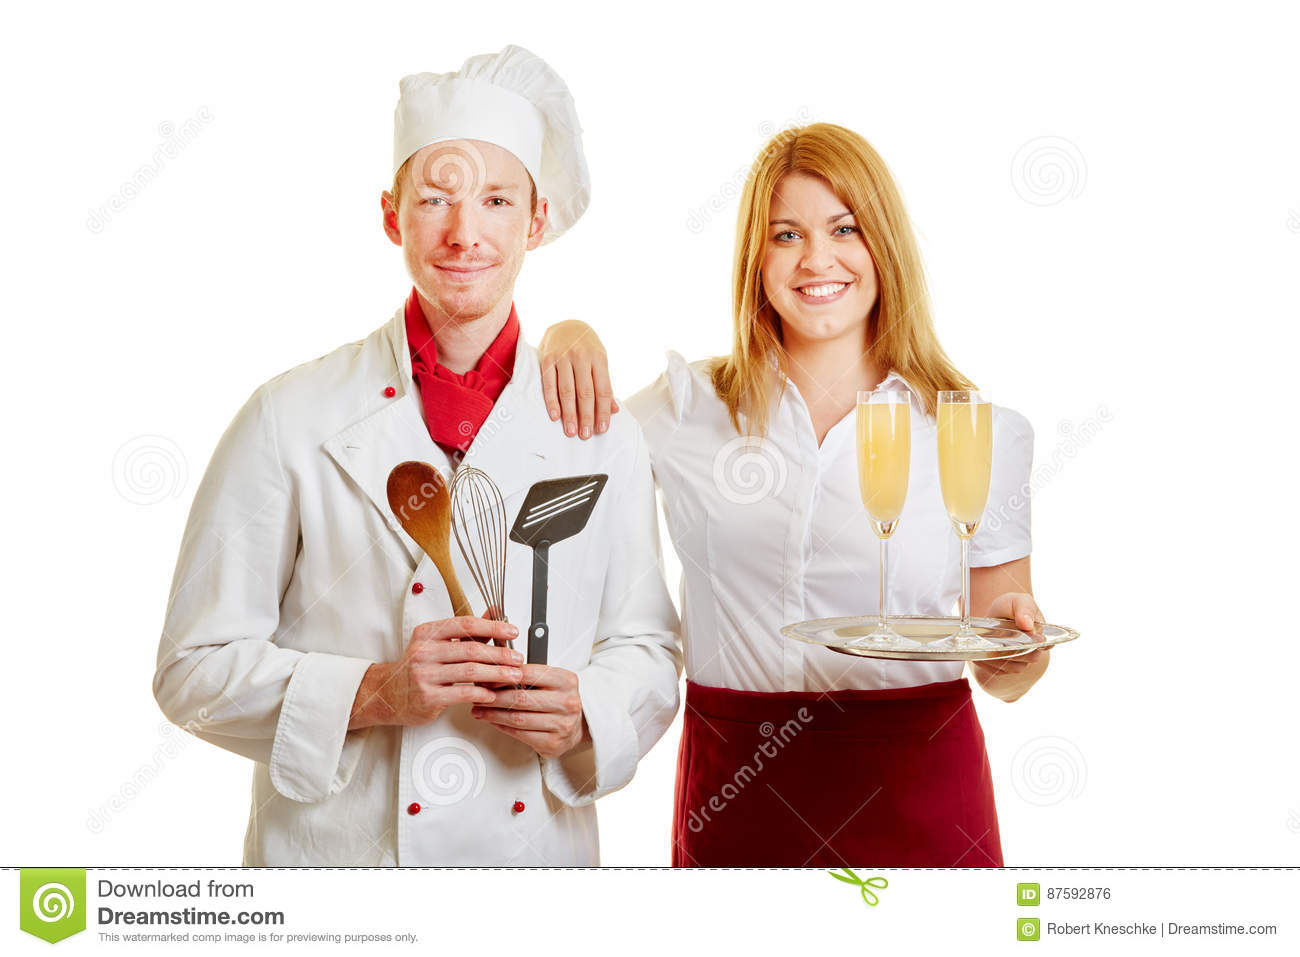 Waitress and chef as service personnel